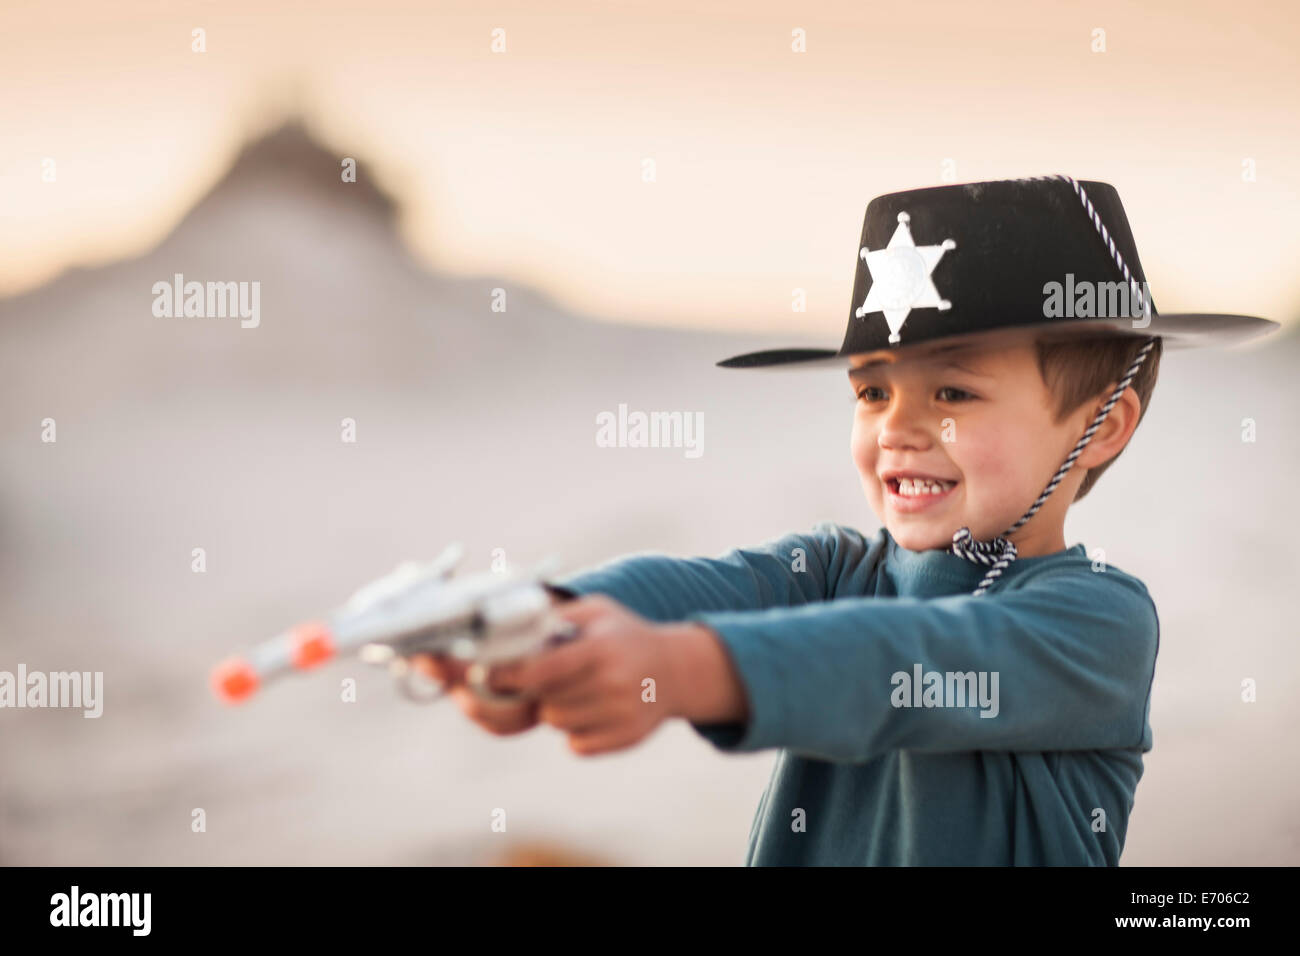 Boy dressed as cowboy sheriff holding pointing toy guns in sand dunes - Stock Image